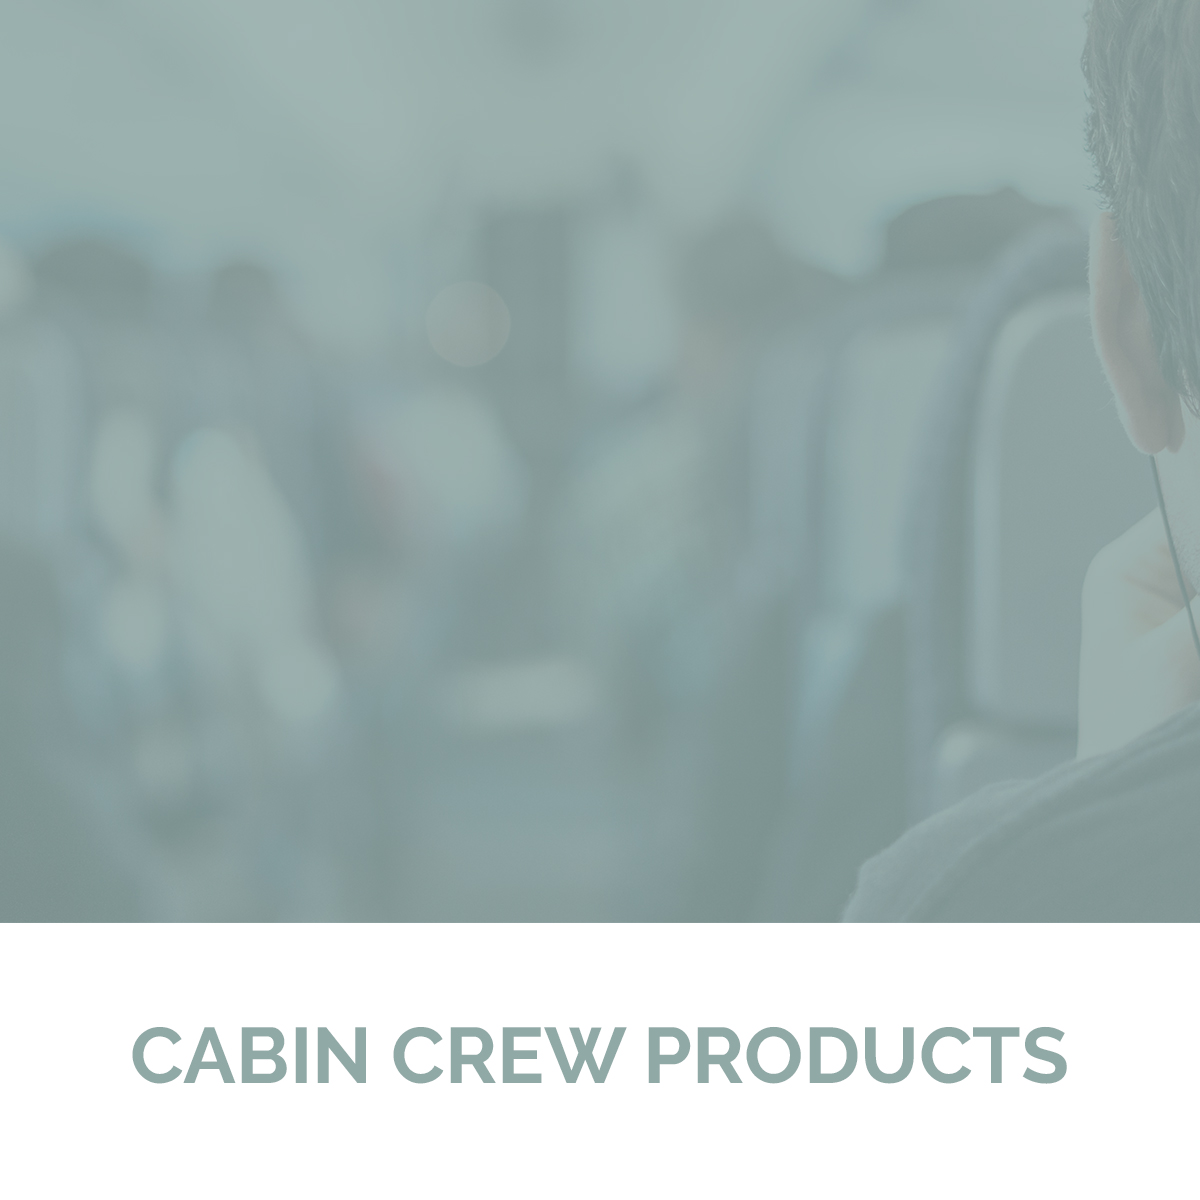 Cabin Crew Products